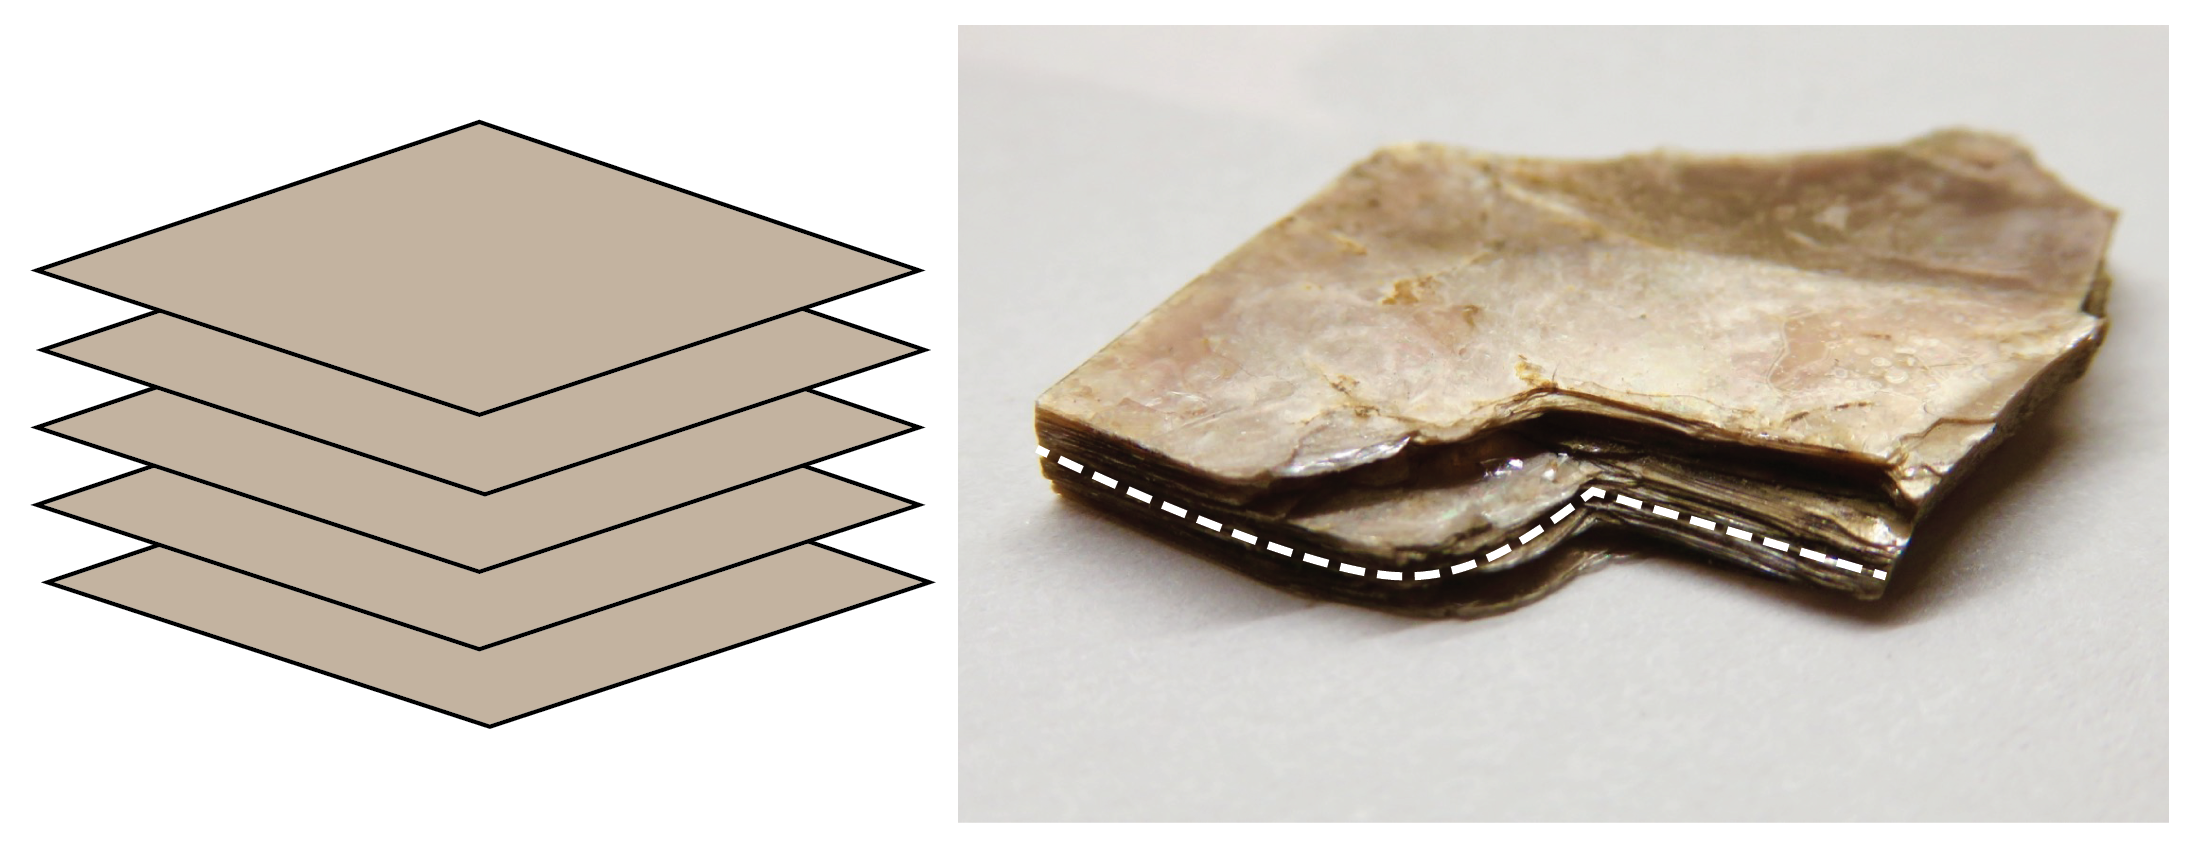 Left: Schematic of basal cleavage. Right: Muscovite mica showing basal cleavage. The white dashed line marks the edge of the cleavage plane. [KP]